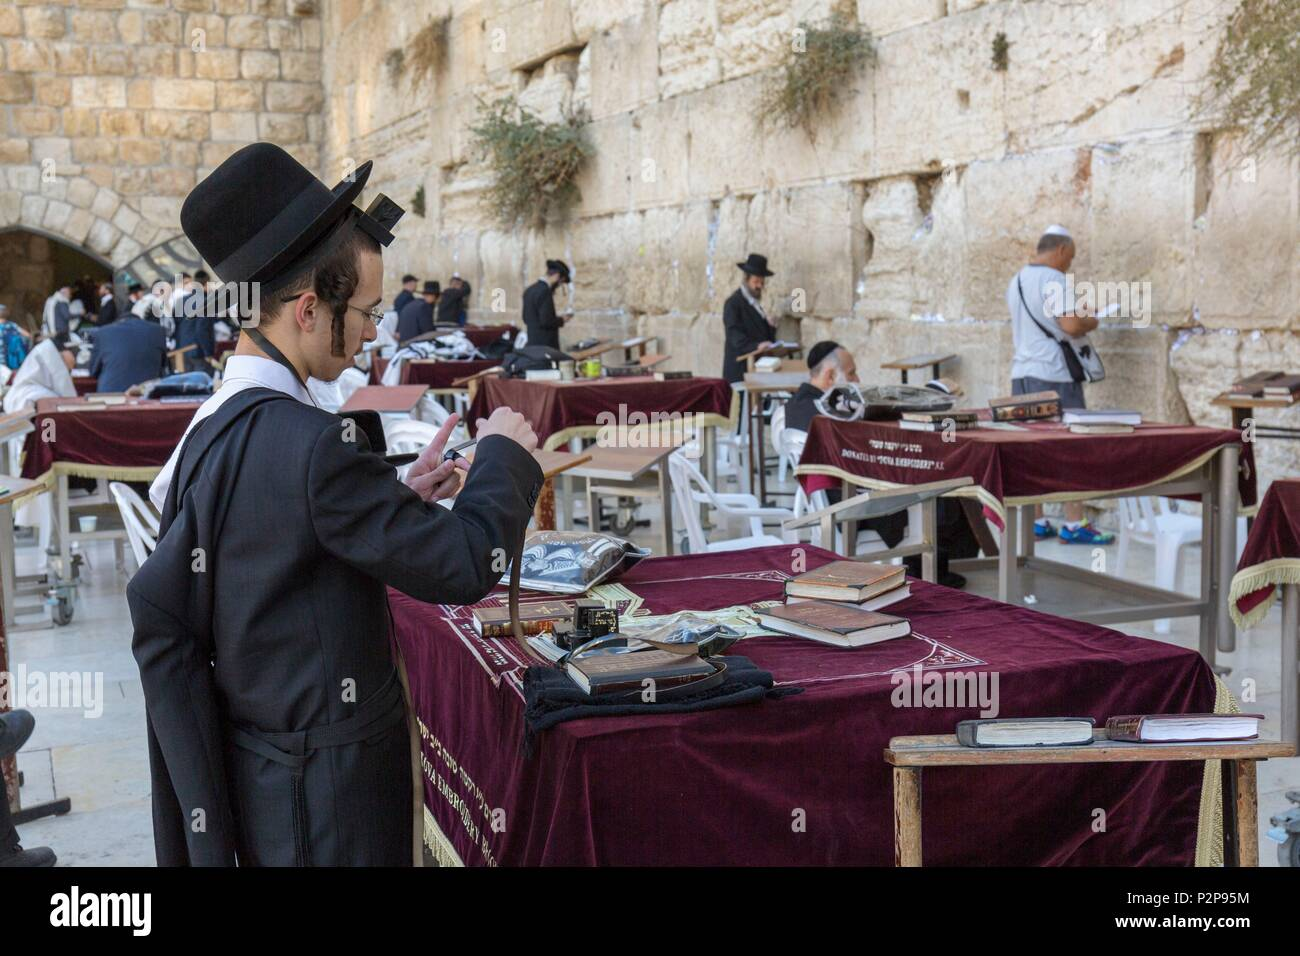 Israel, Jerusalem, the UNESCO World Heritage Old Town, the Western Wall or Wailing Wall, Praying Men, Hasidic Jew - Stock Image